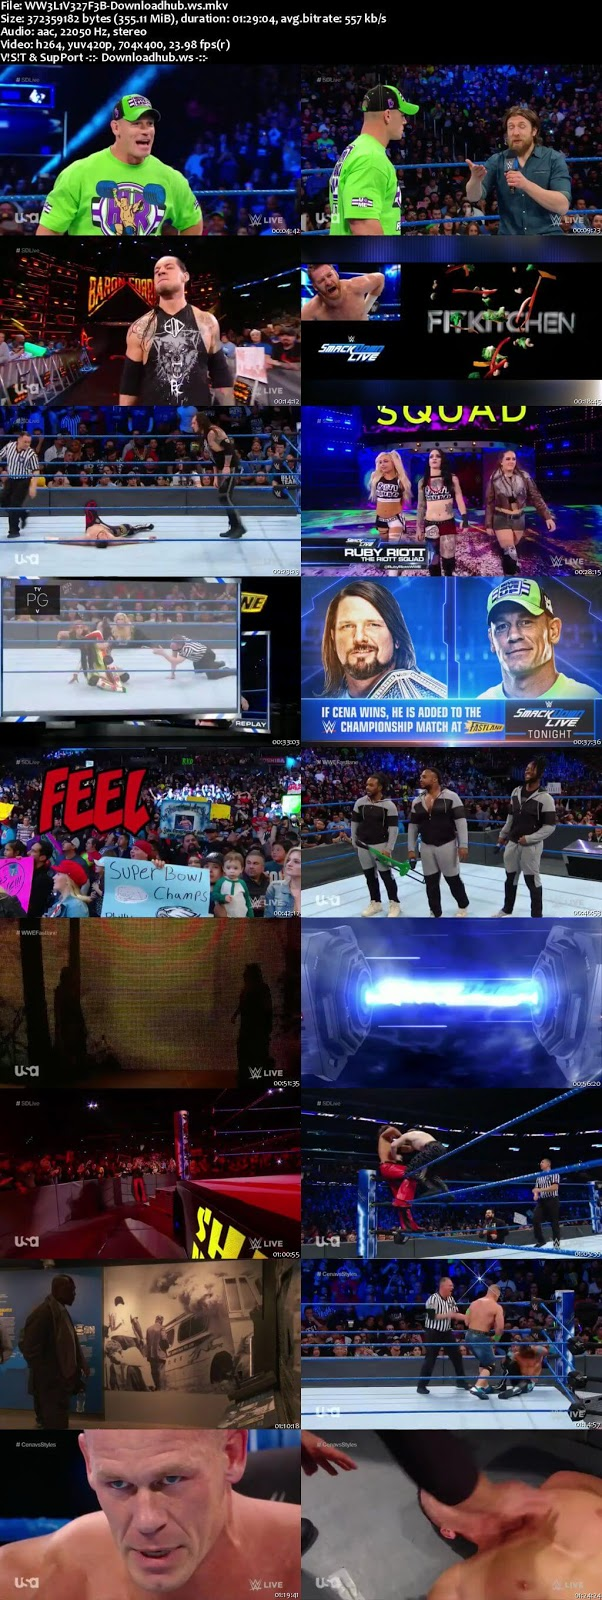 WWE Smackdown Live 27 February 2018 480p HDTV Download